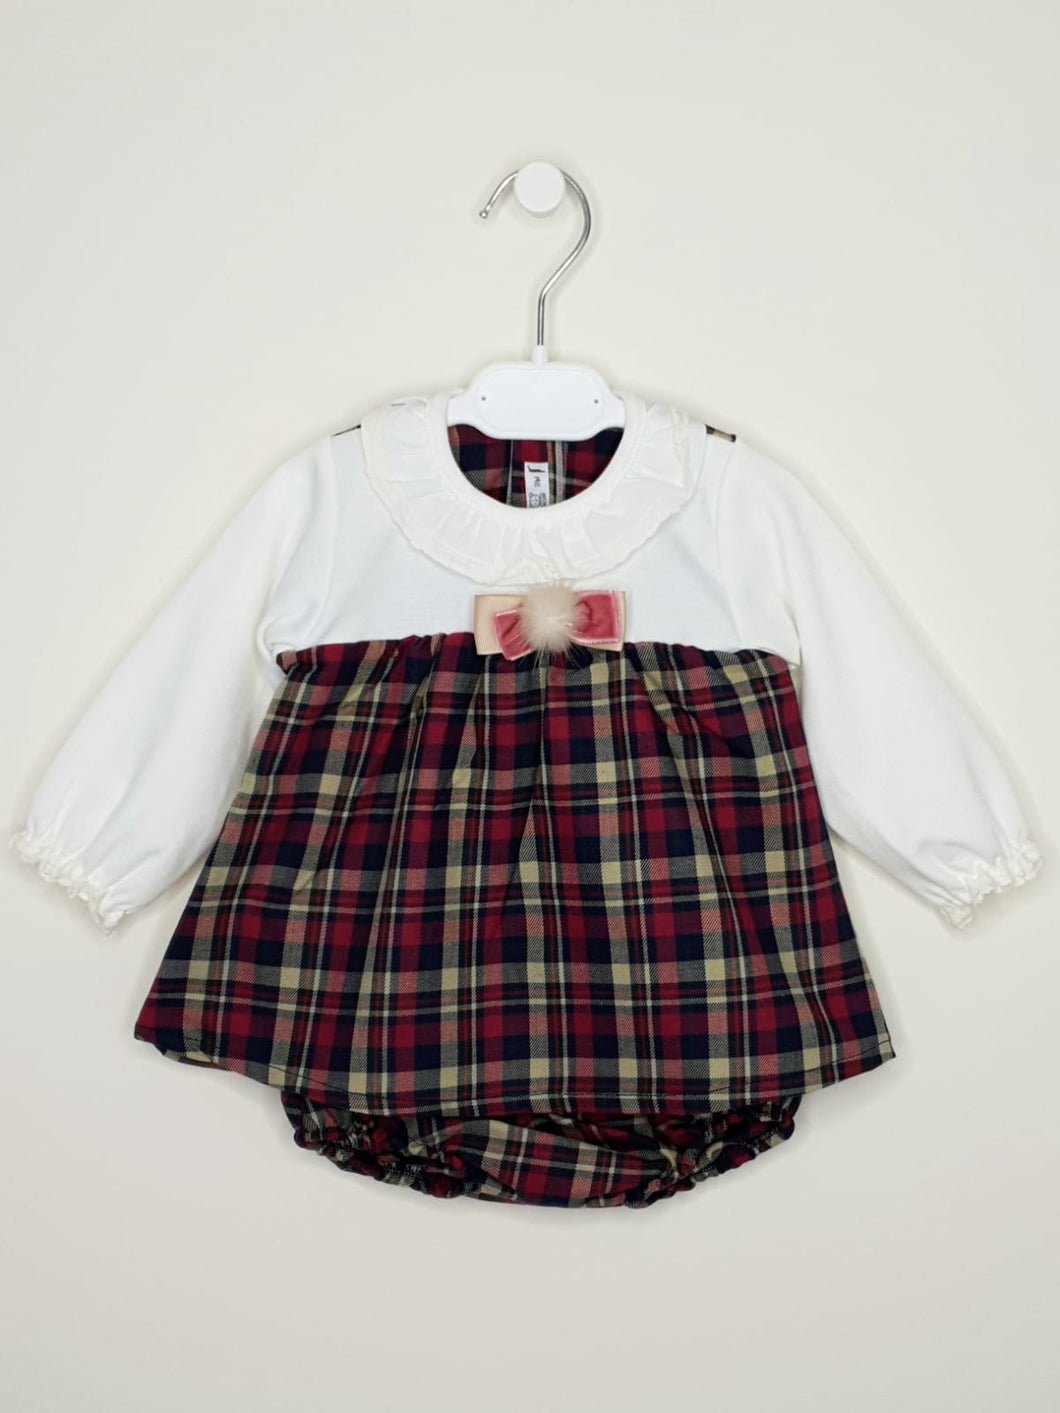 CALAMARO - Tartan Dress With Pompom And Matching Bloomers